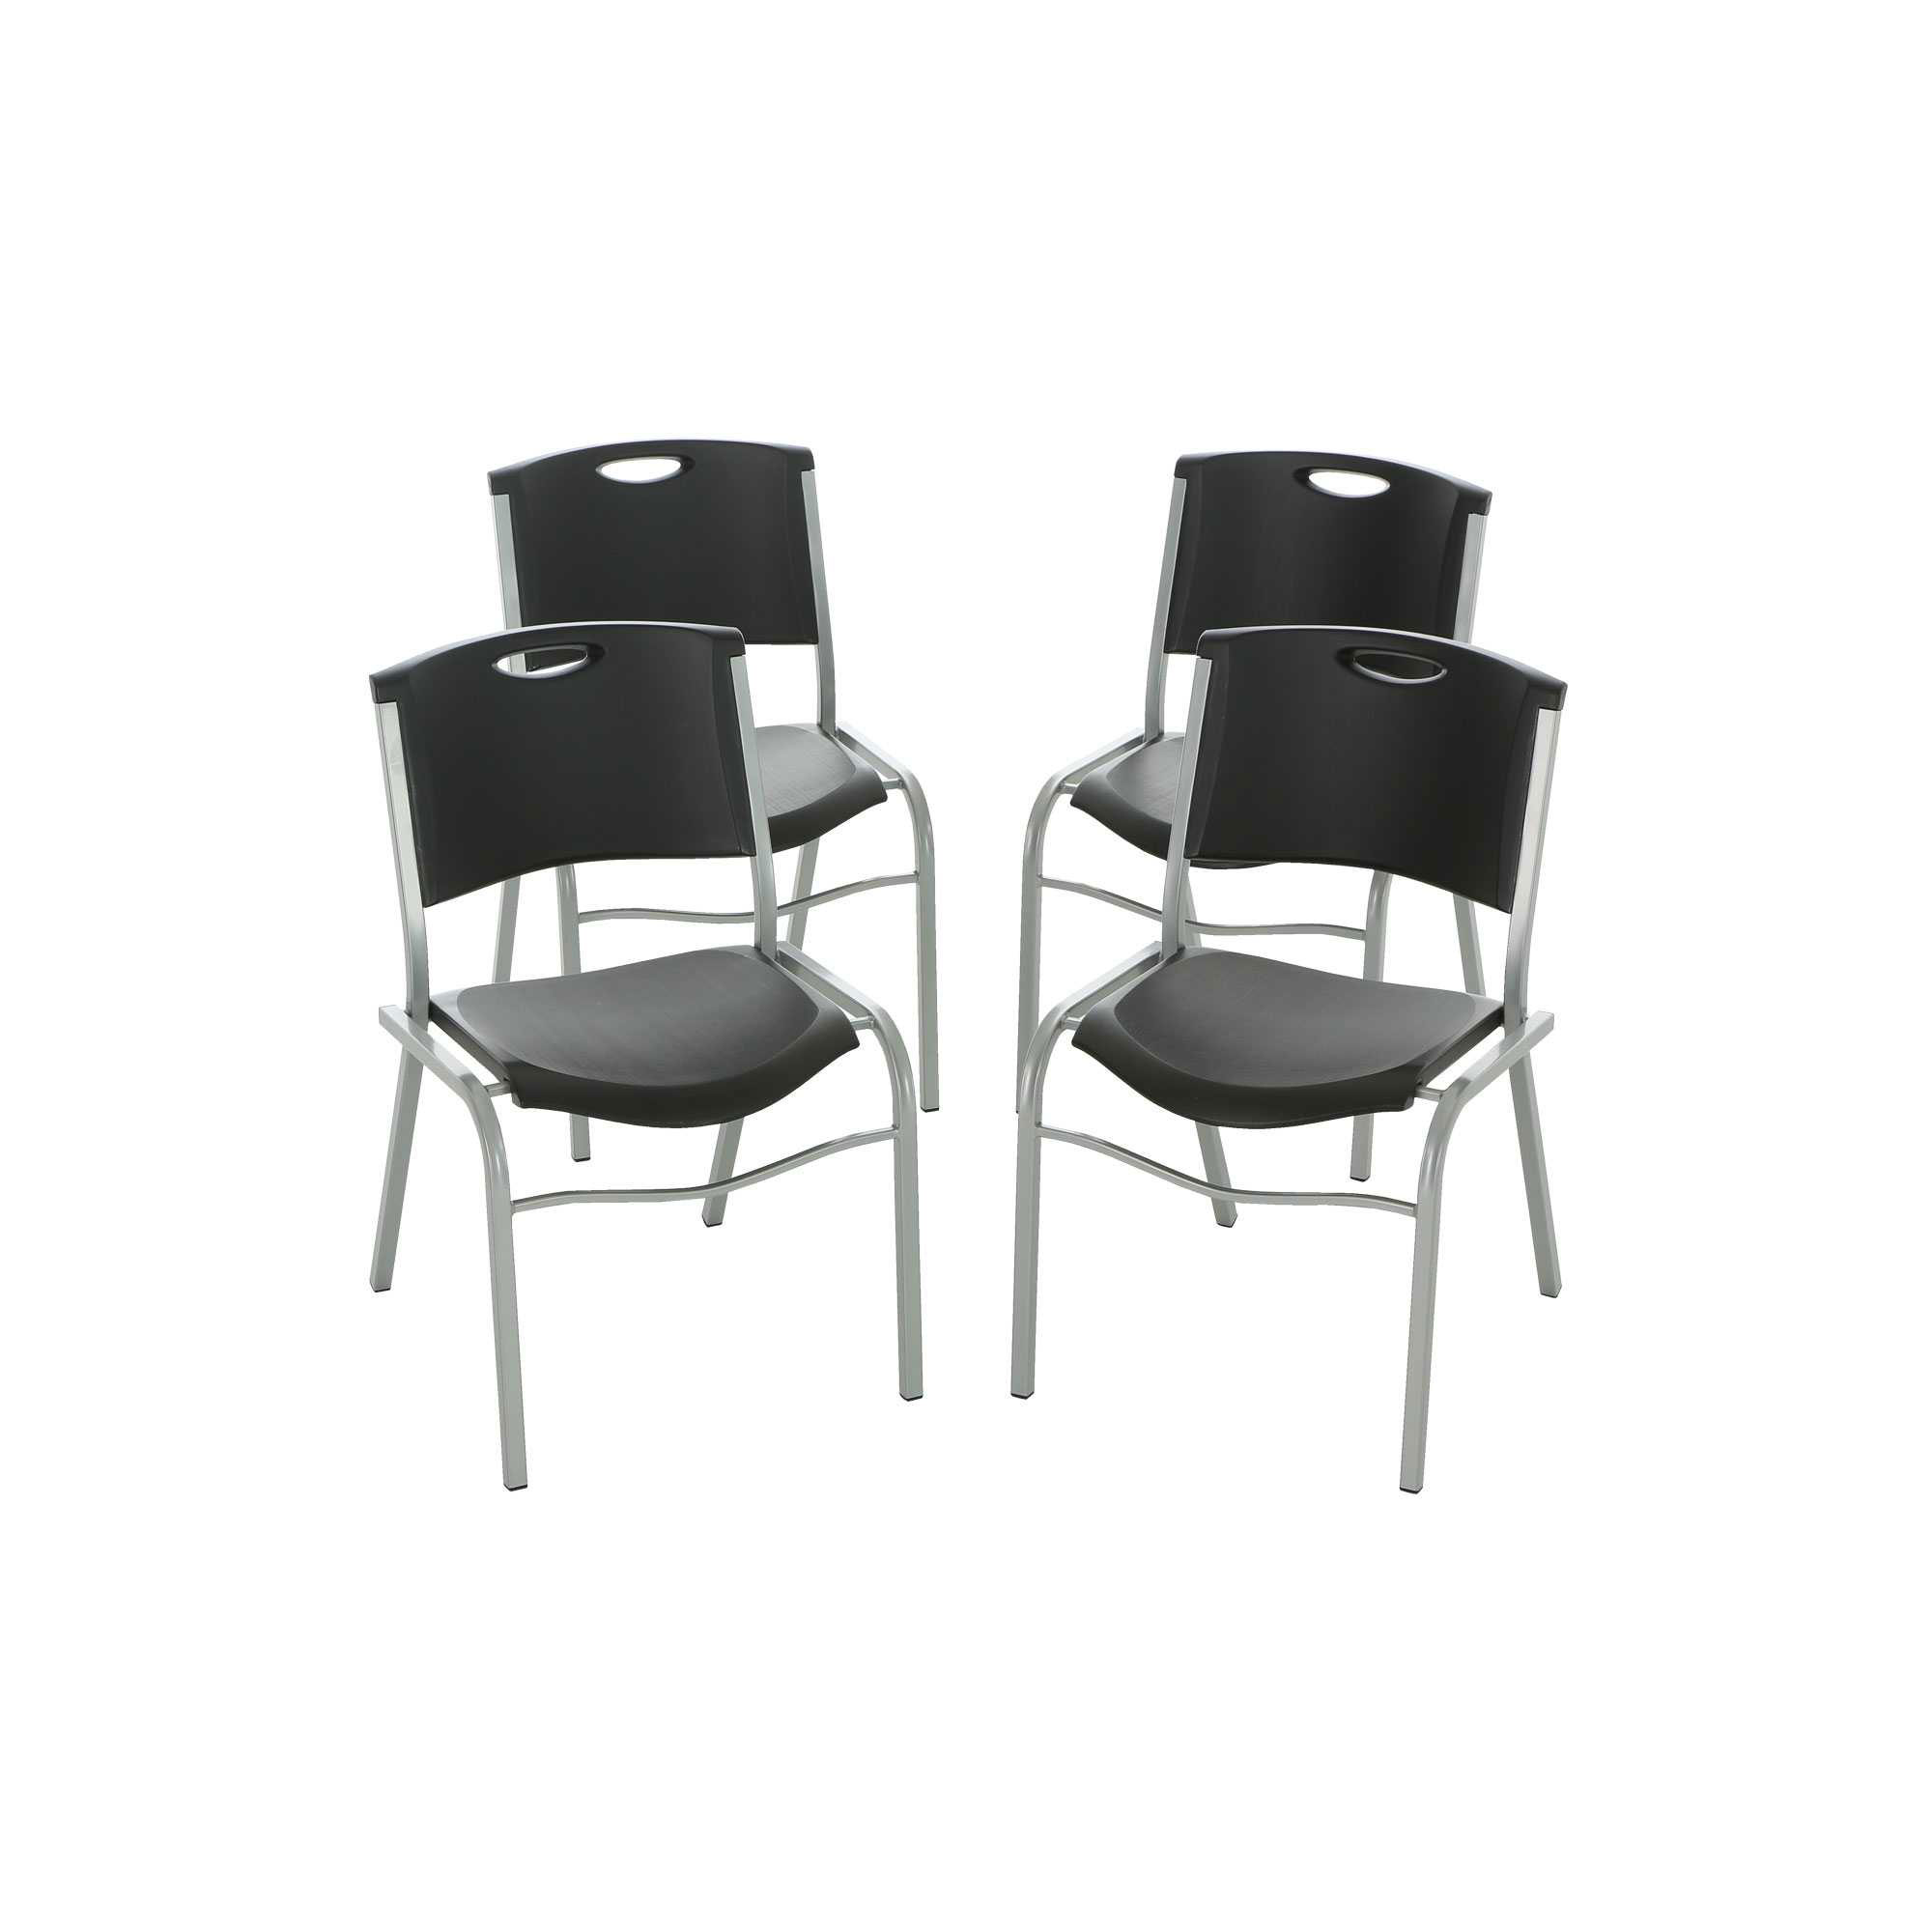 lifetime stacking chairs 2830 black molded seat commercial restaurant folding bulk discounts available